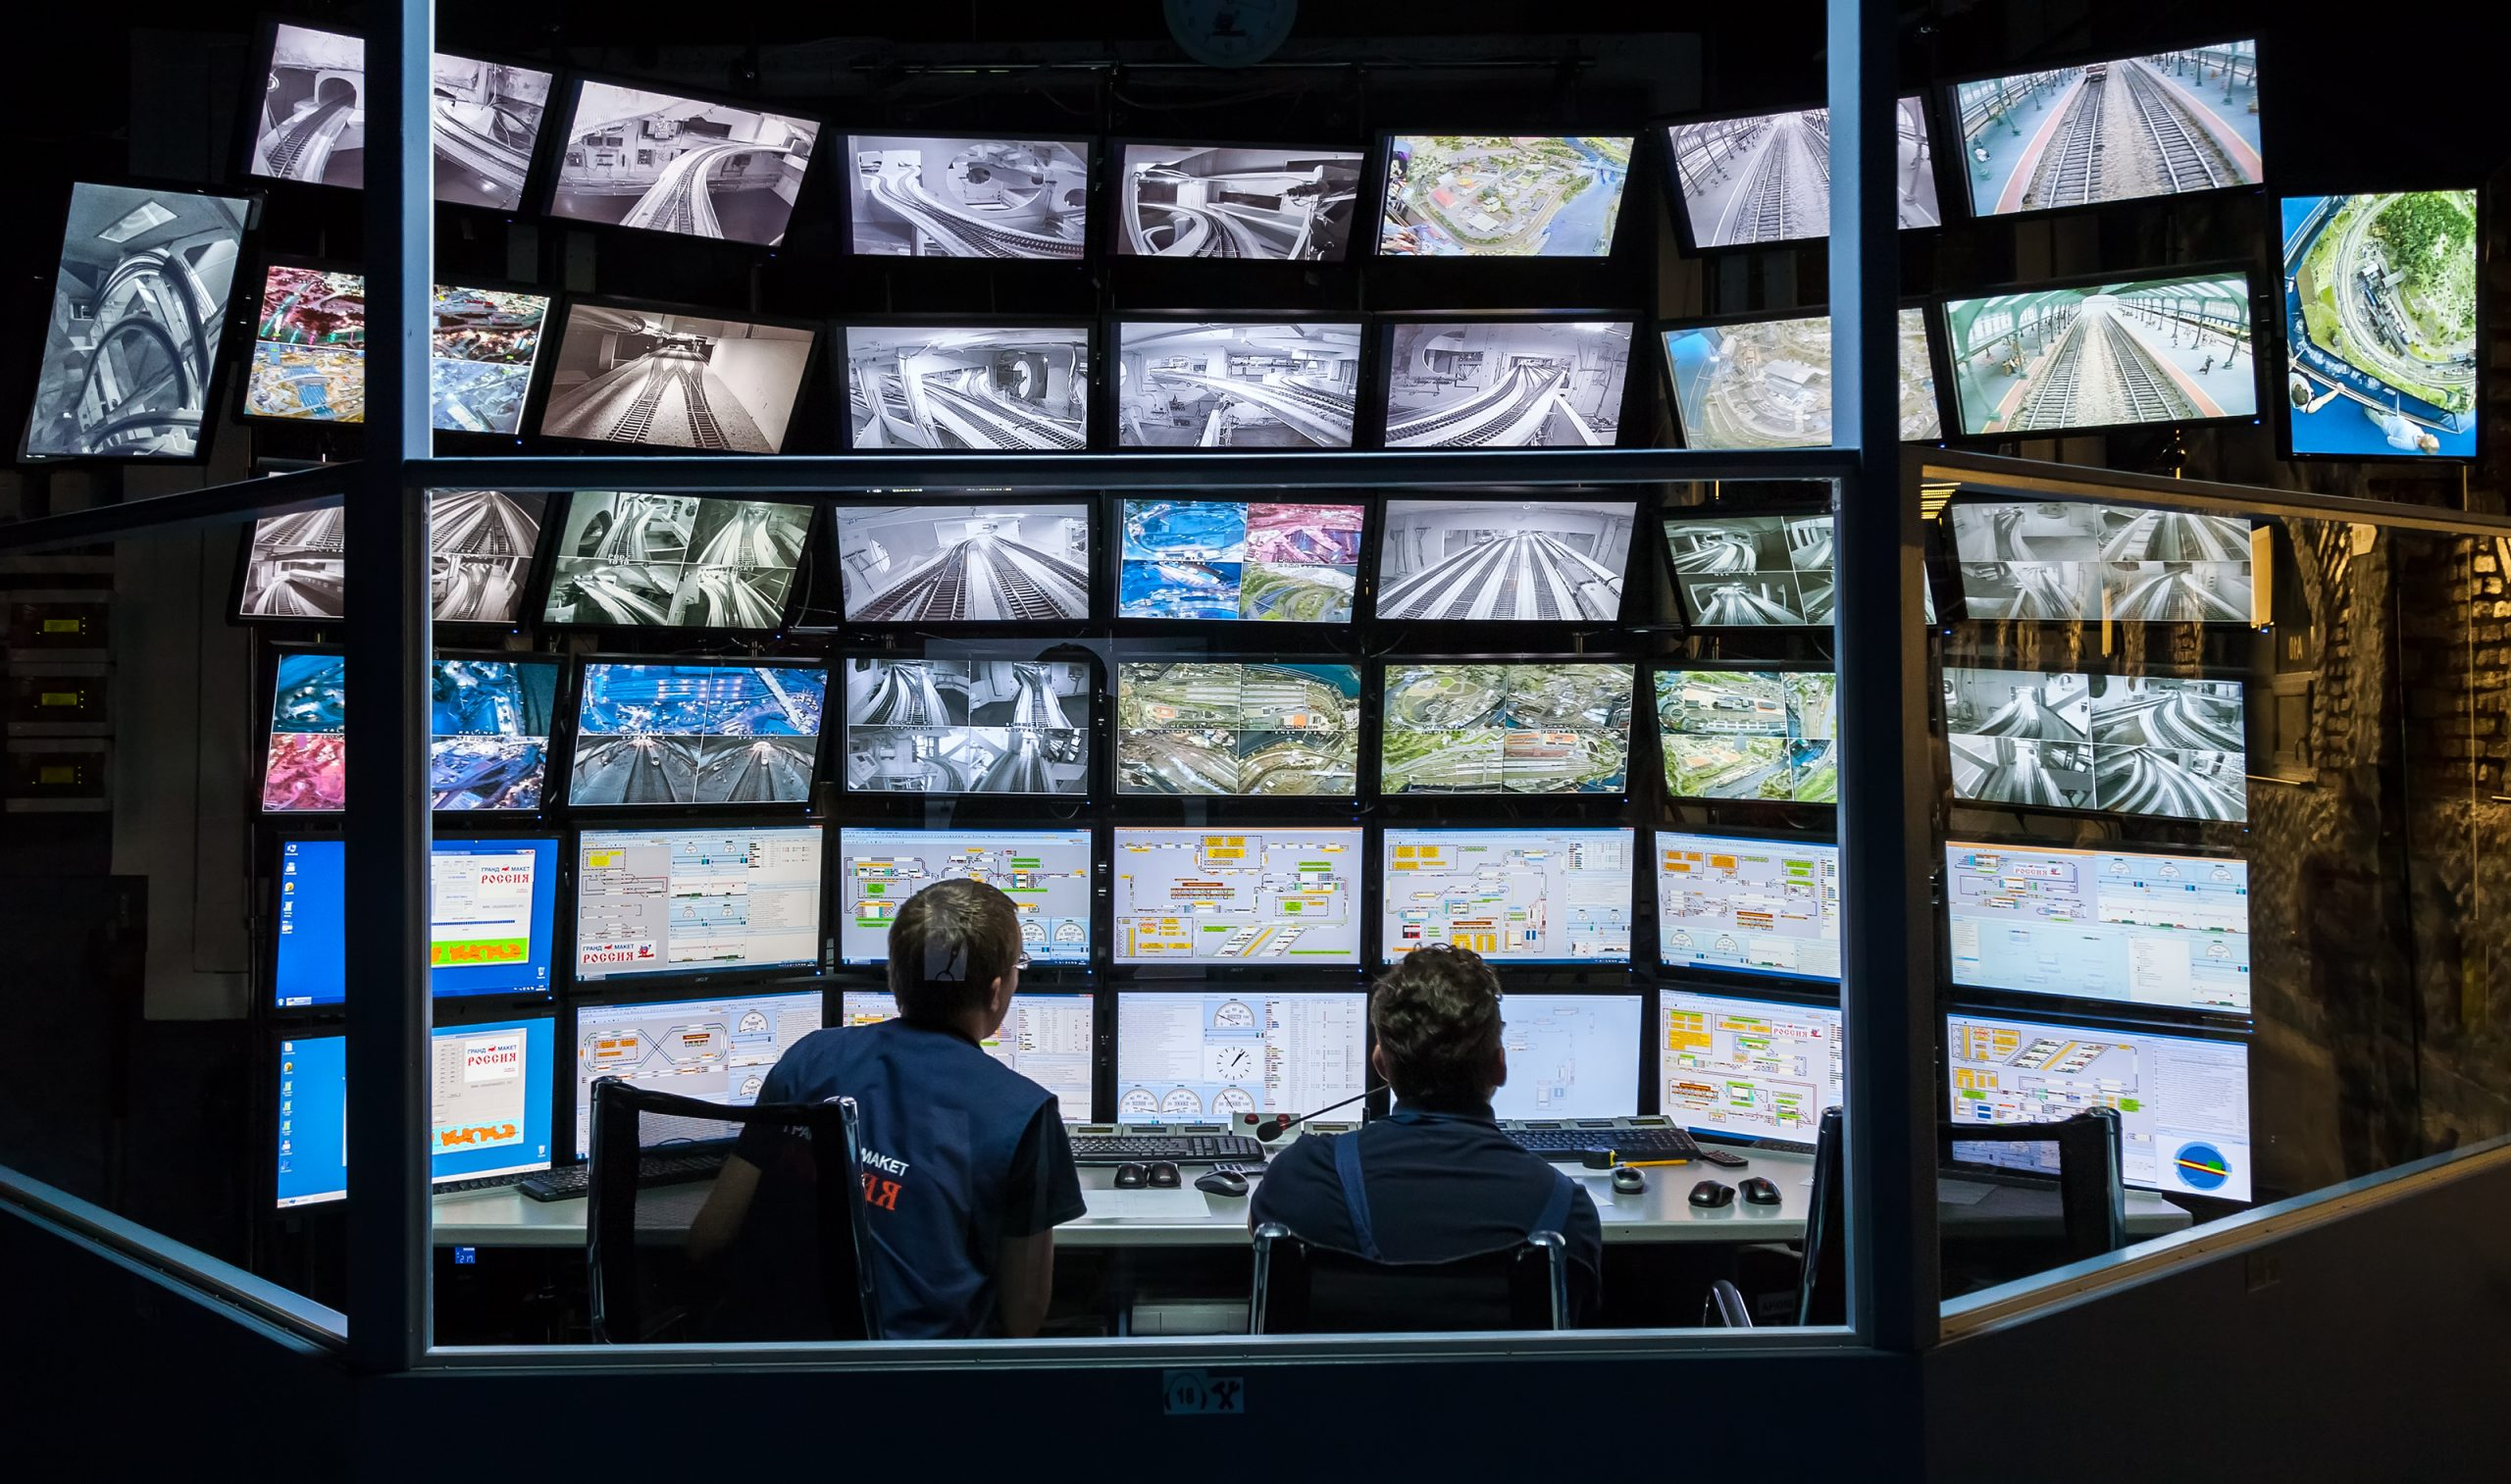 Operations Control Center with observers